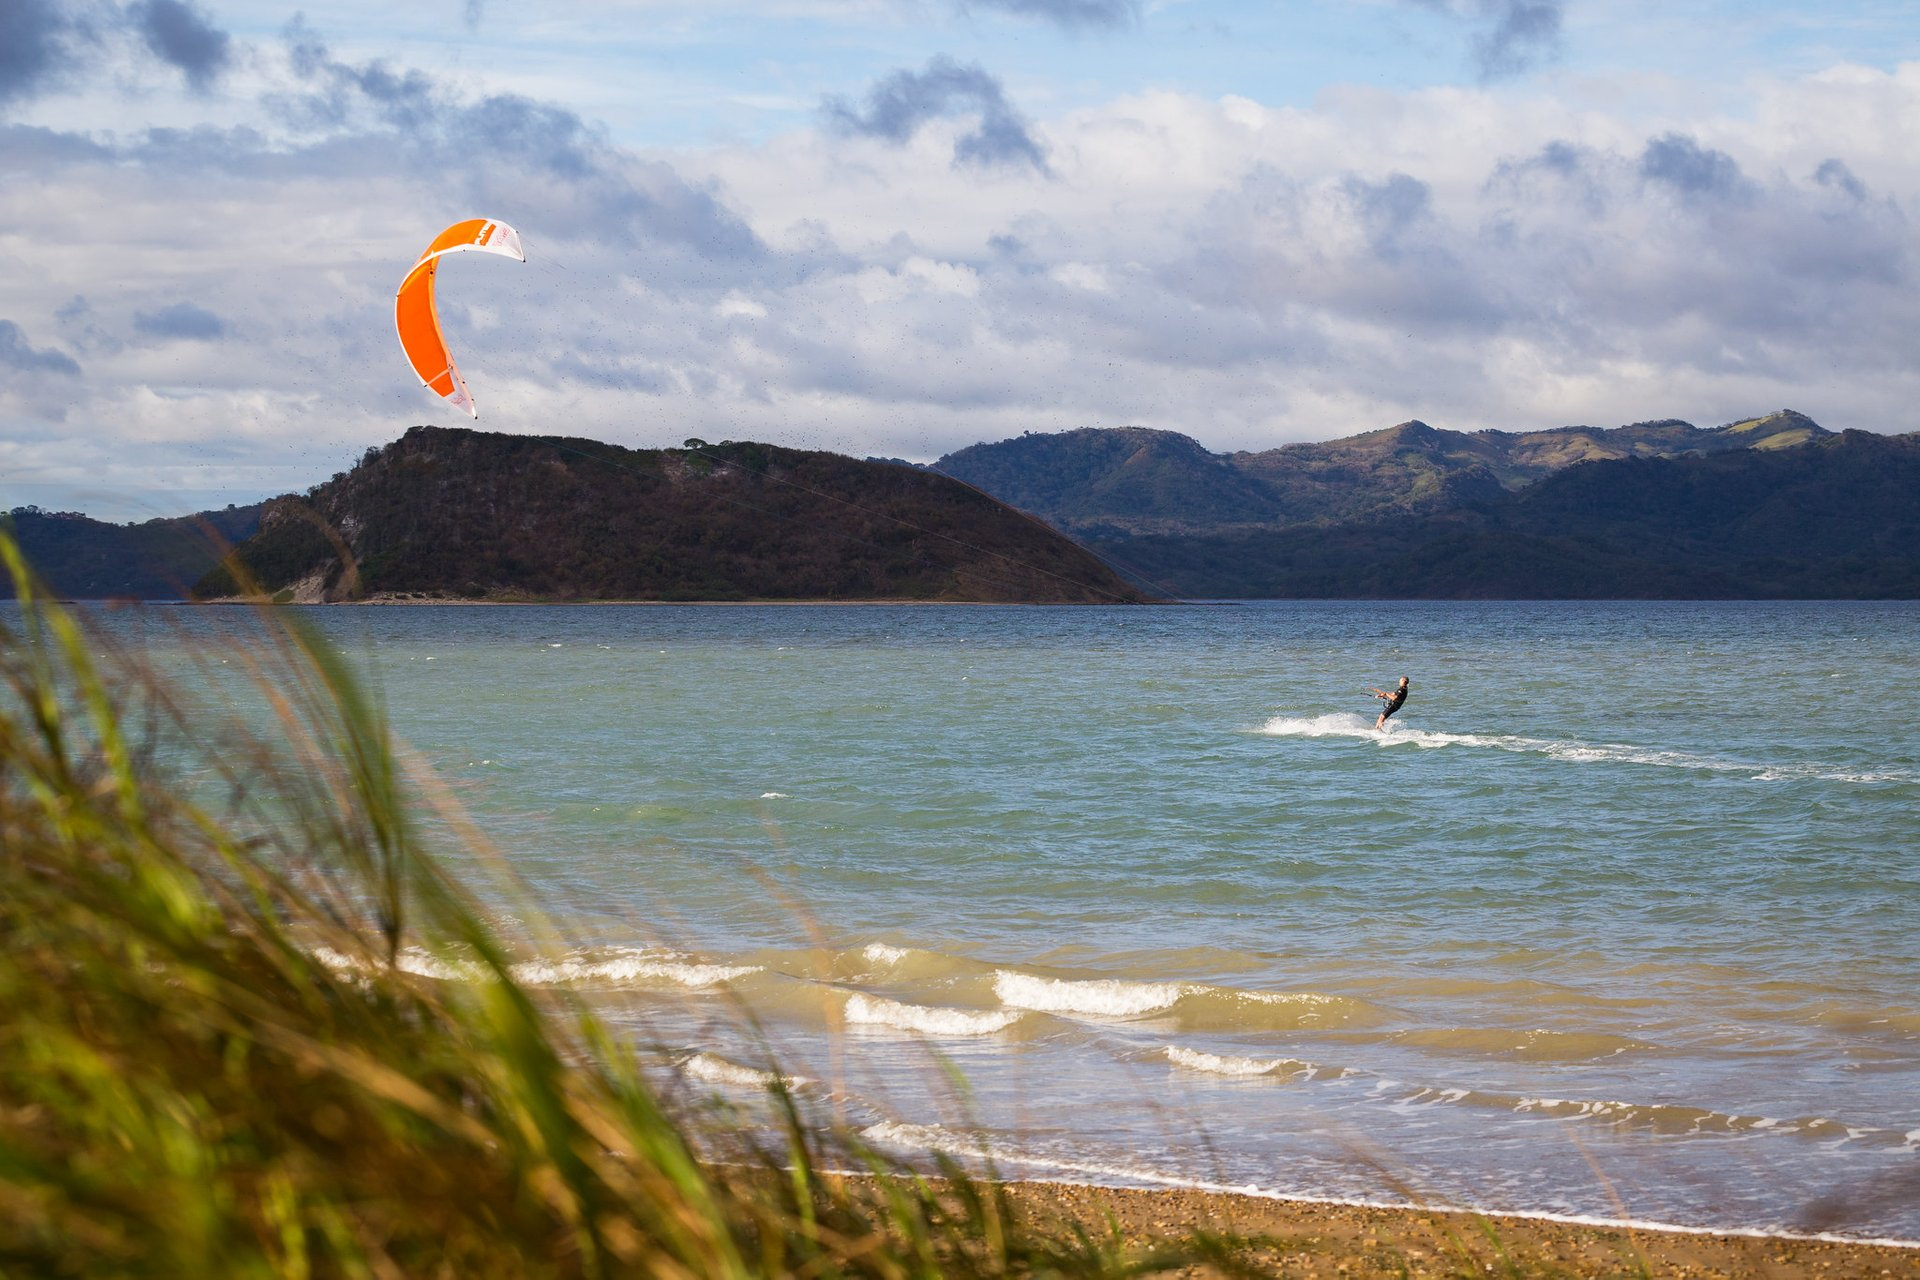 Kiteboarding and Windsurfing in Costa Rica 2020 - Best Time